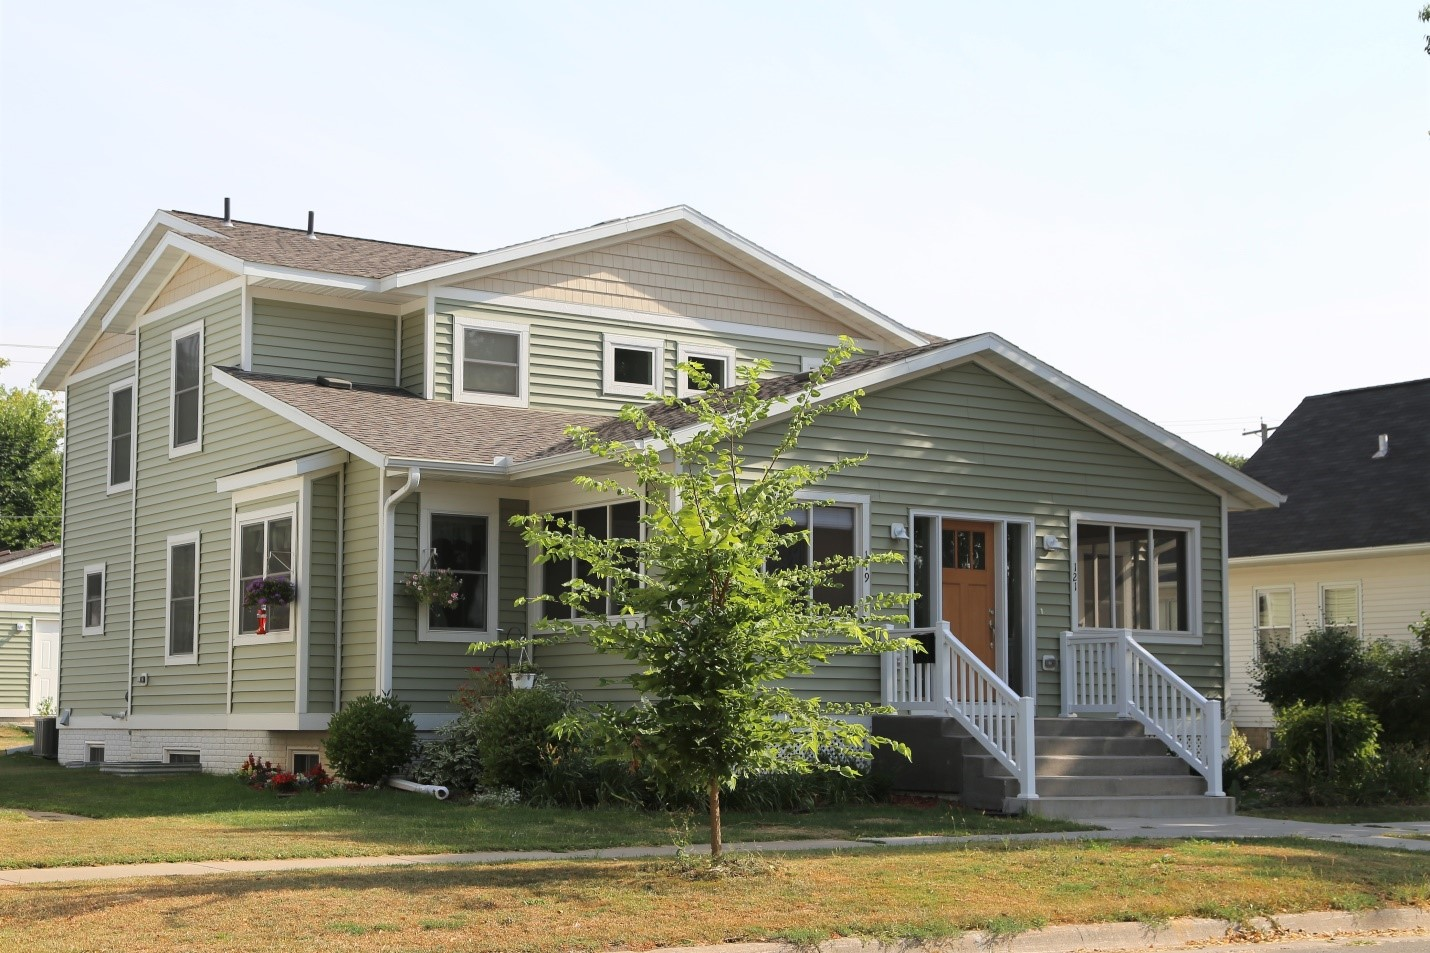 With one apartment affordable at 80% AMI and one apartment at market rate, this Red Wing, Minnesota duplex is an example of how local housing trust fund investments can be utilized to create affordable options that suit the local community.